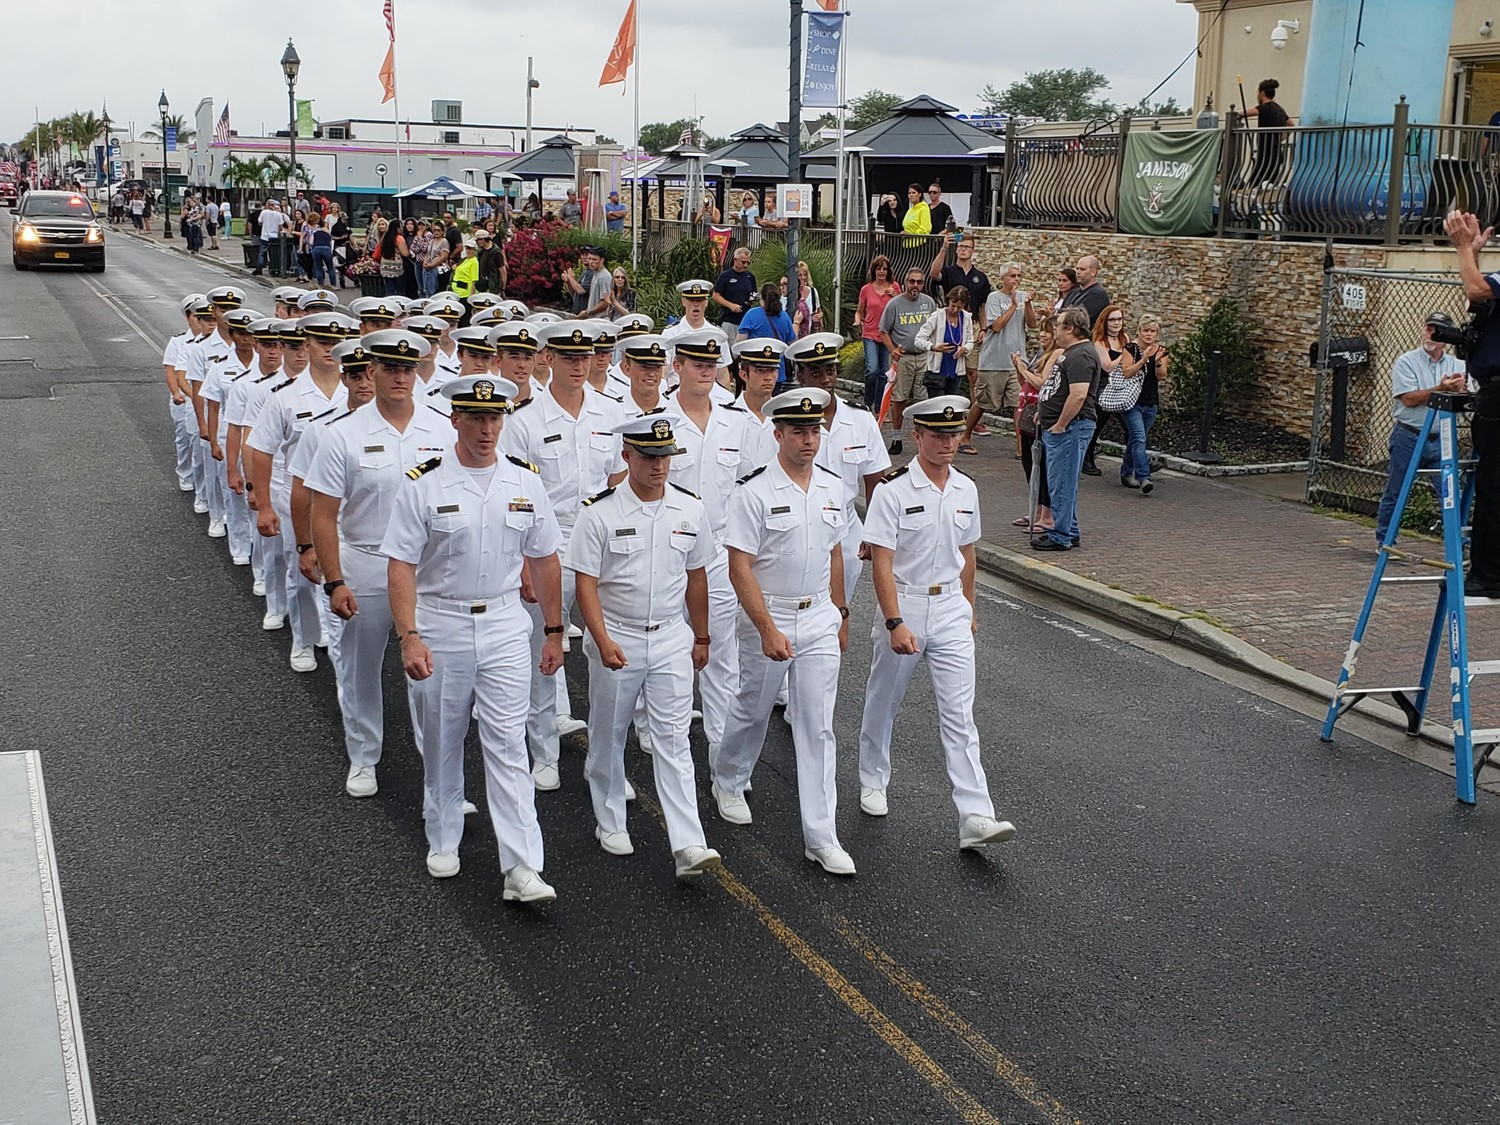 While the U.S. Naval Academy midshipmen spent a weekend celebrating 20 years of visiting Freeport, they dressed in their white summer uniforms and marched in the 125th anniversary parade to commemorate the Freeport Fire Department on Aug. 11.